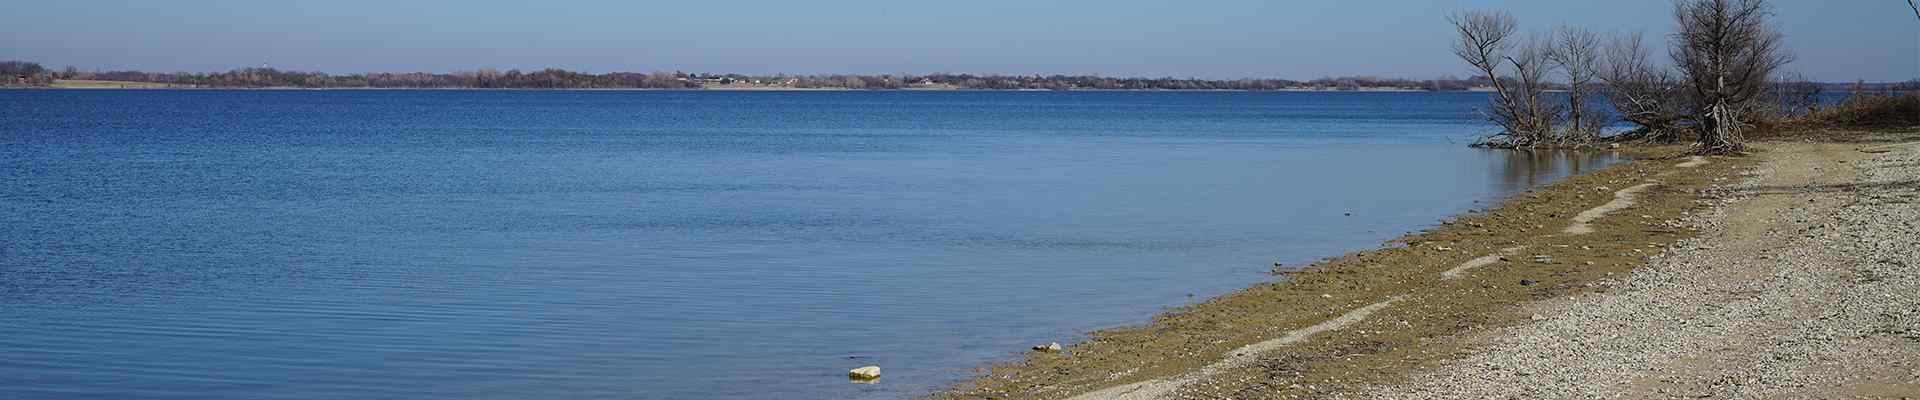 skyline view of water and beach in wylie texas